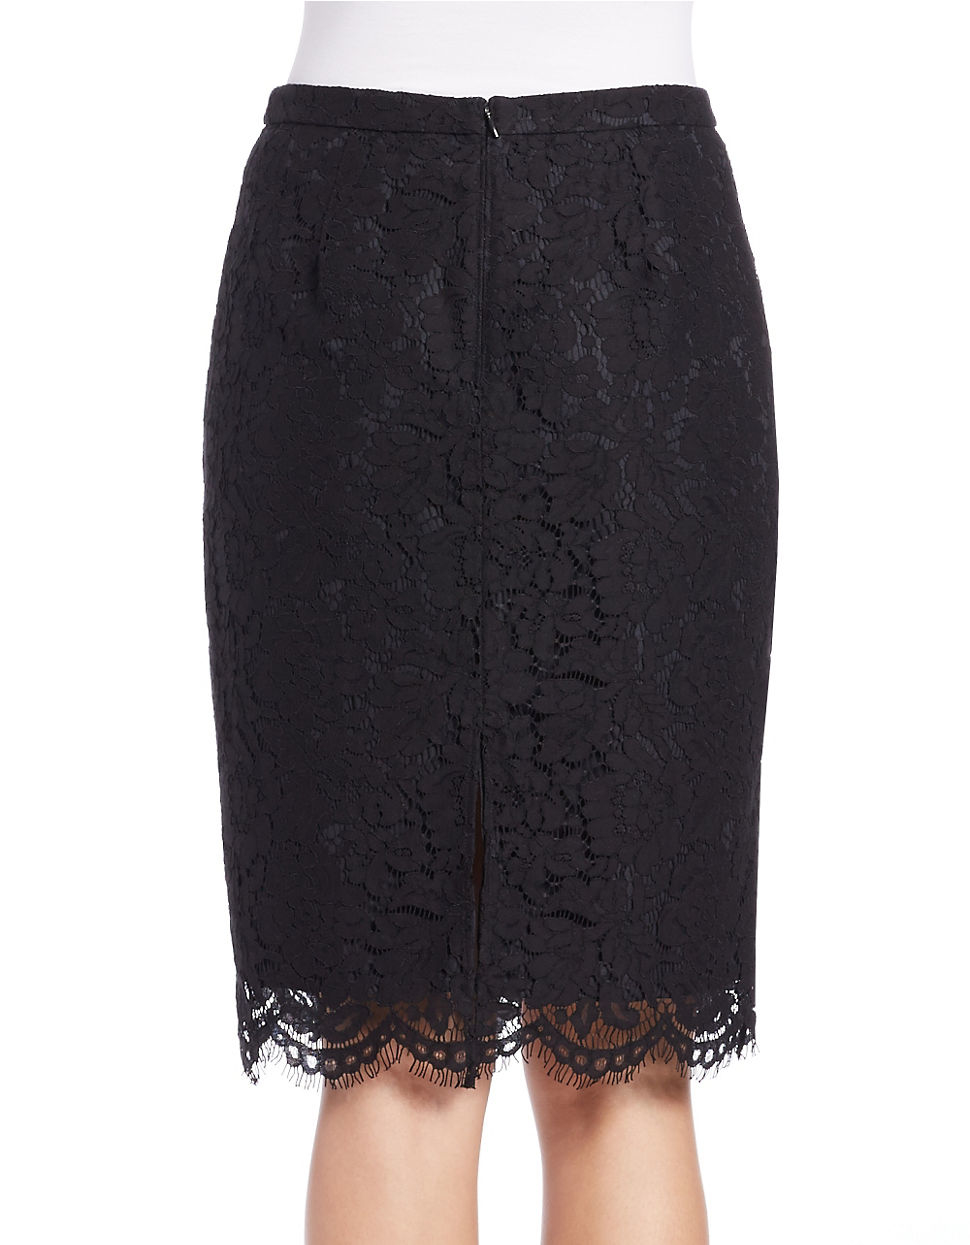 424 fifth floral lace pencil skirt in black lyst